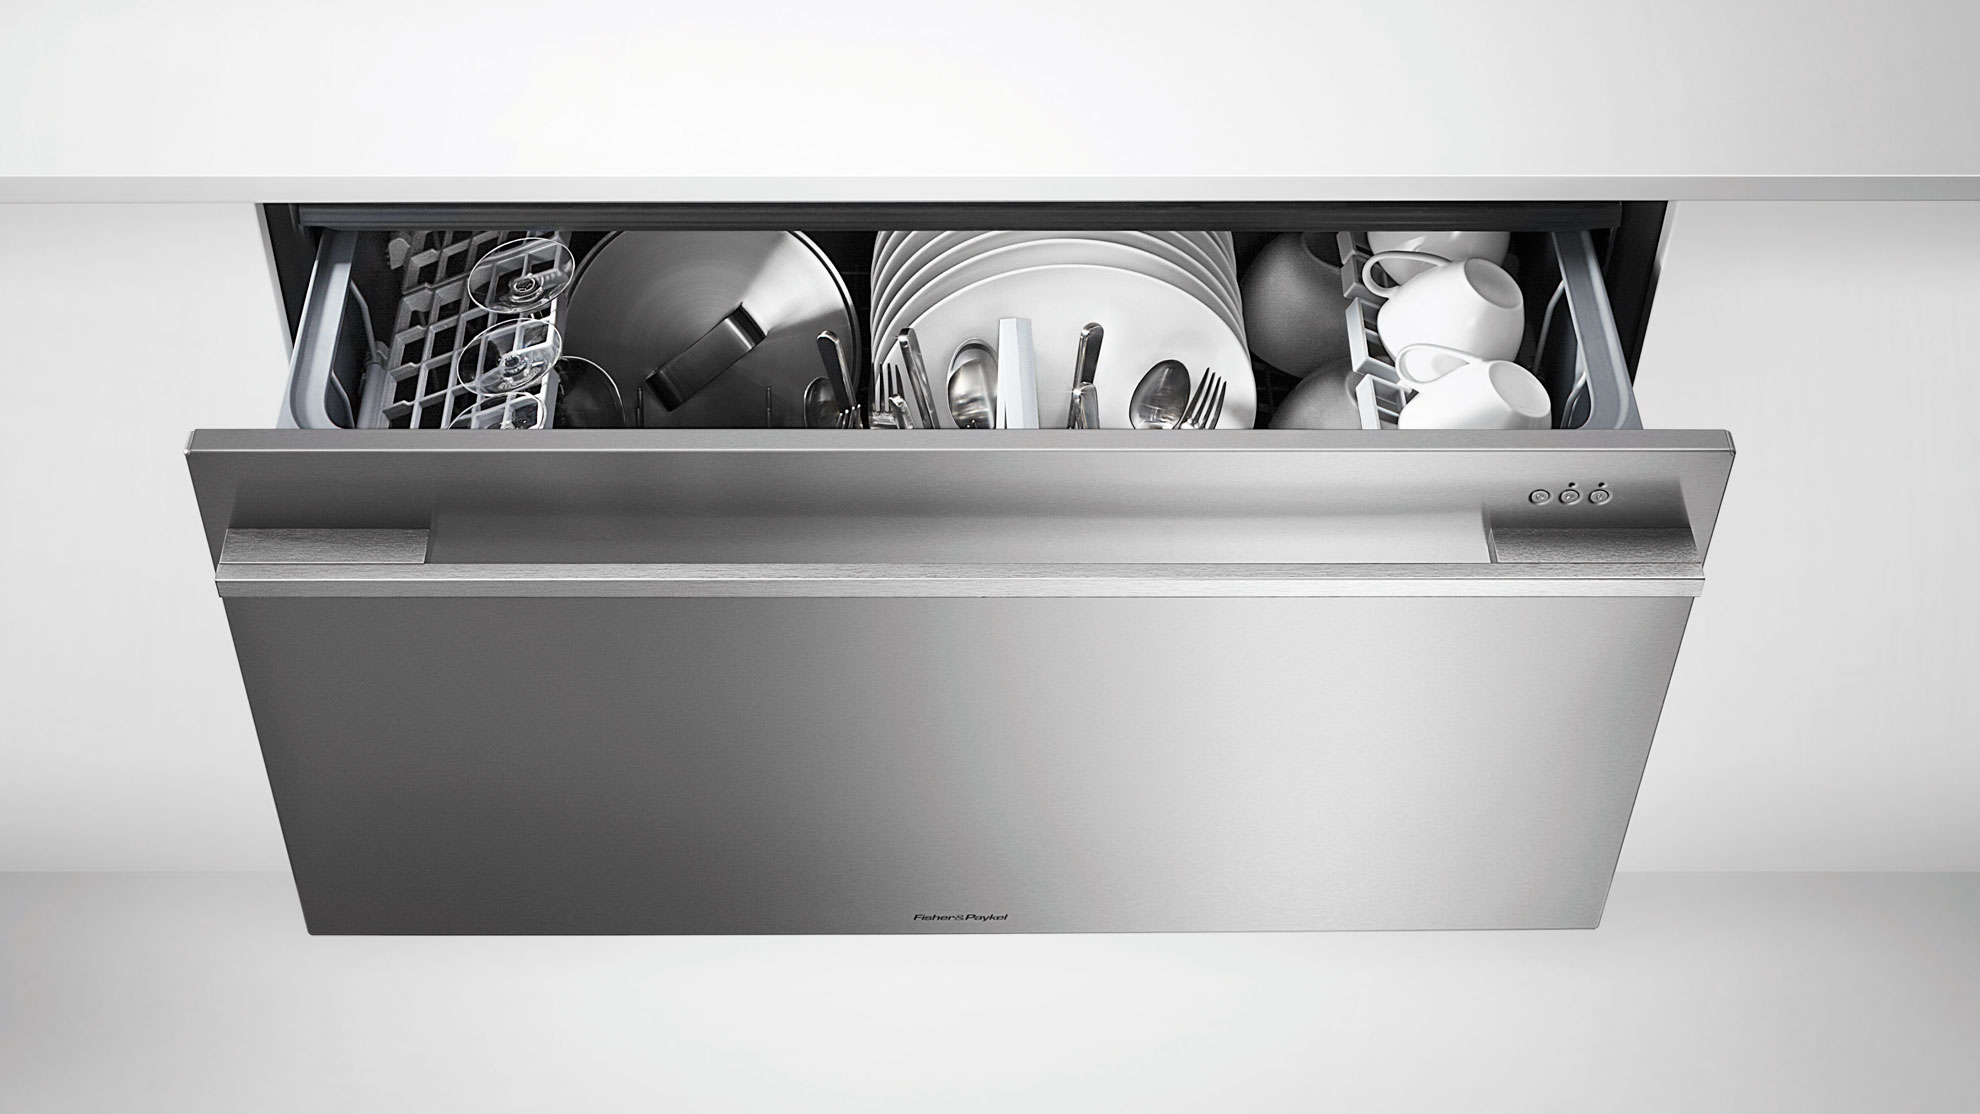 dishdrawer™ dishwasher parts & accessories